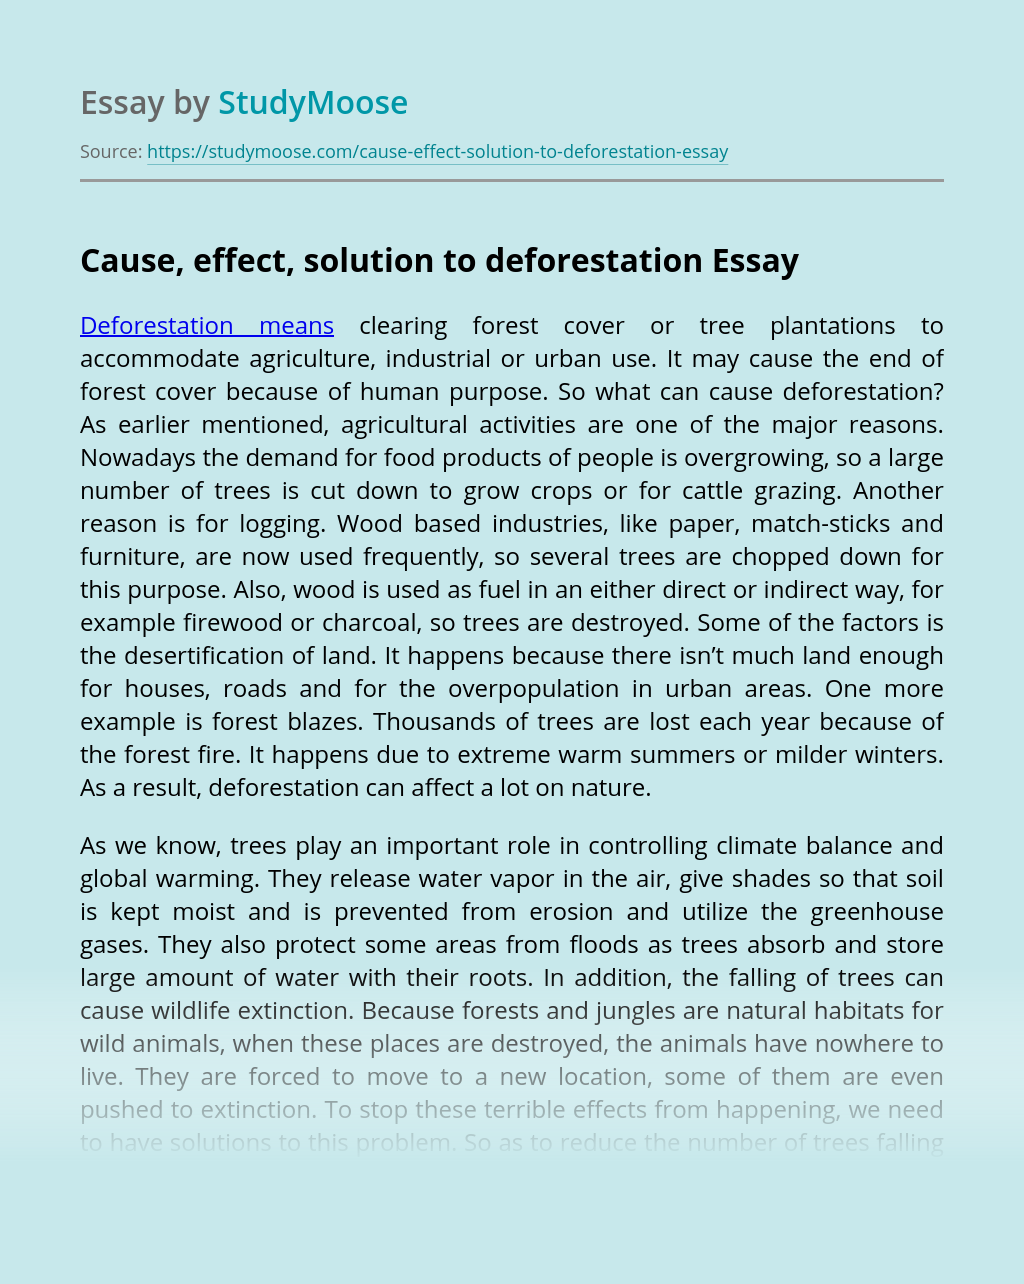 Cause, effect, solution to deforestation